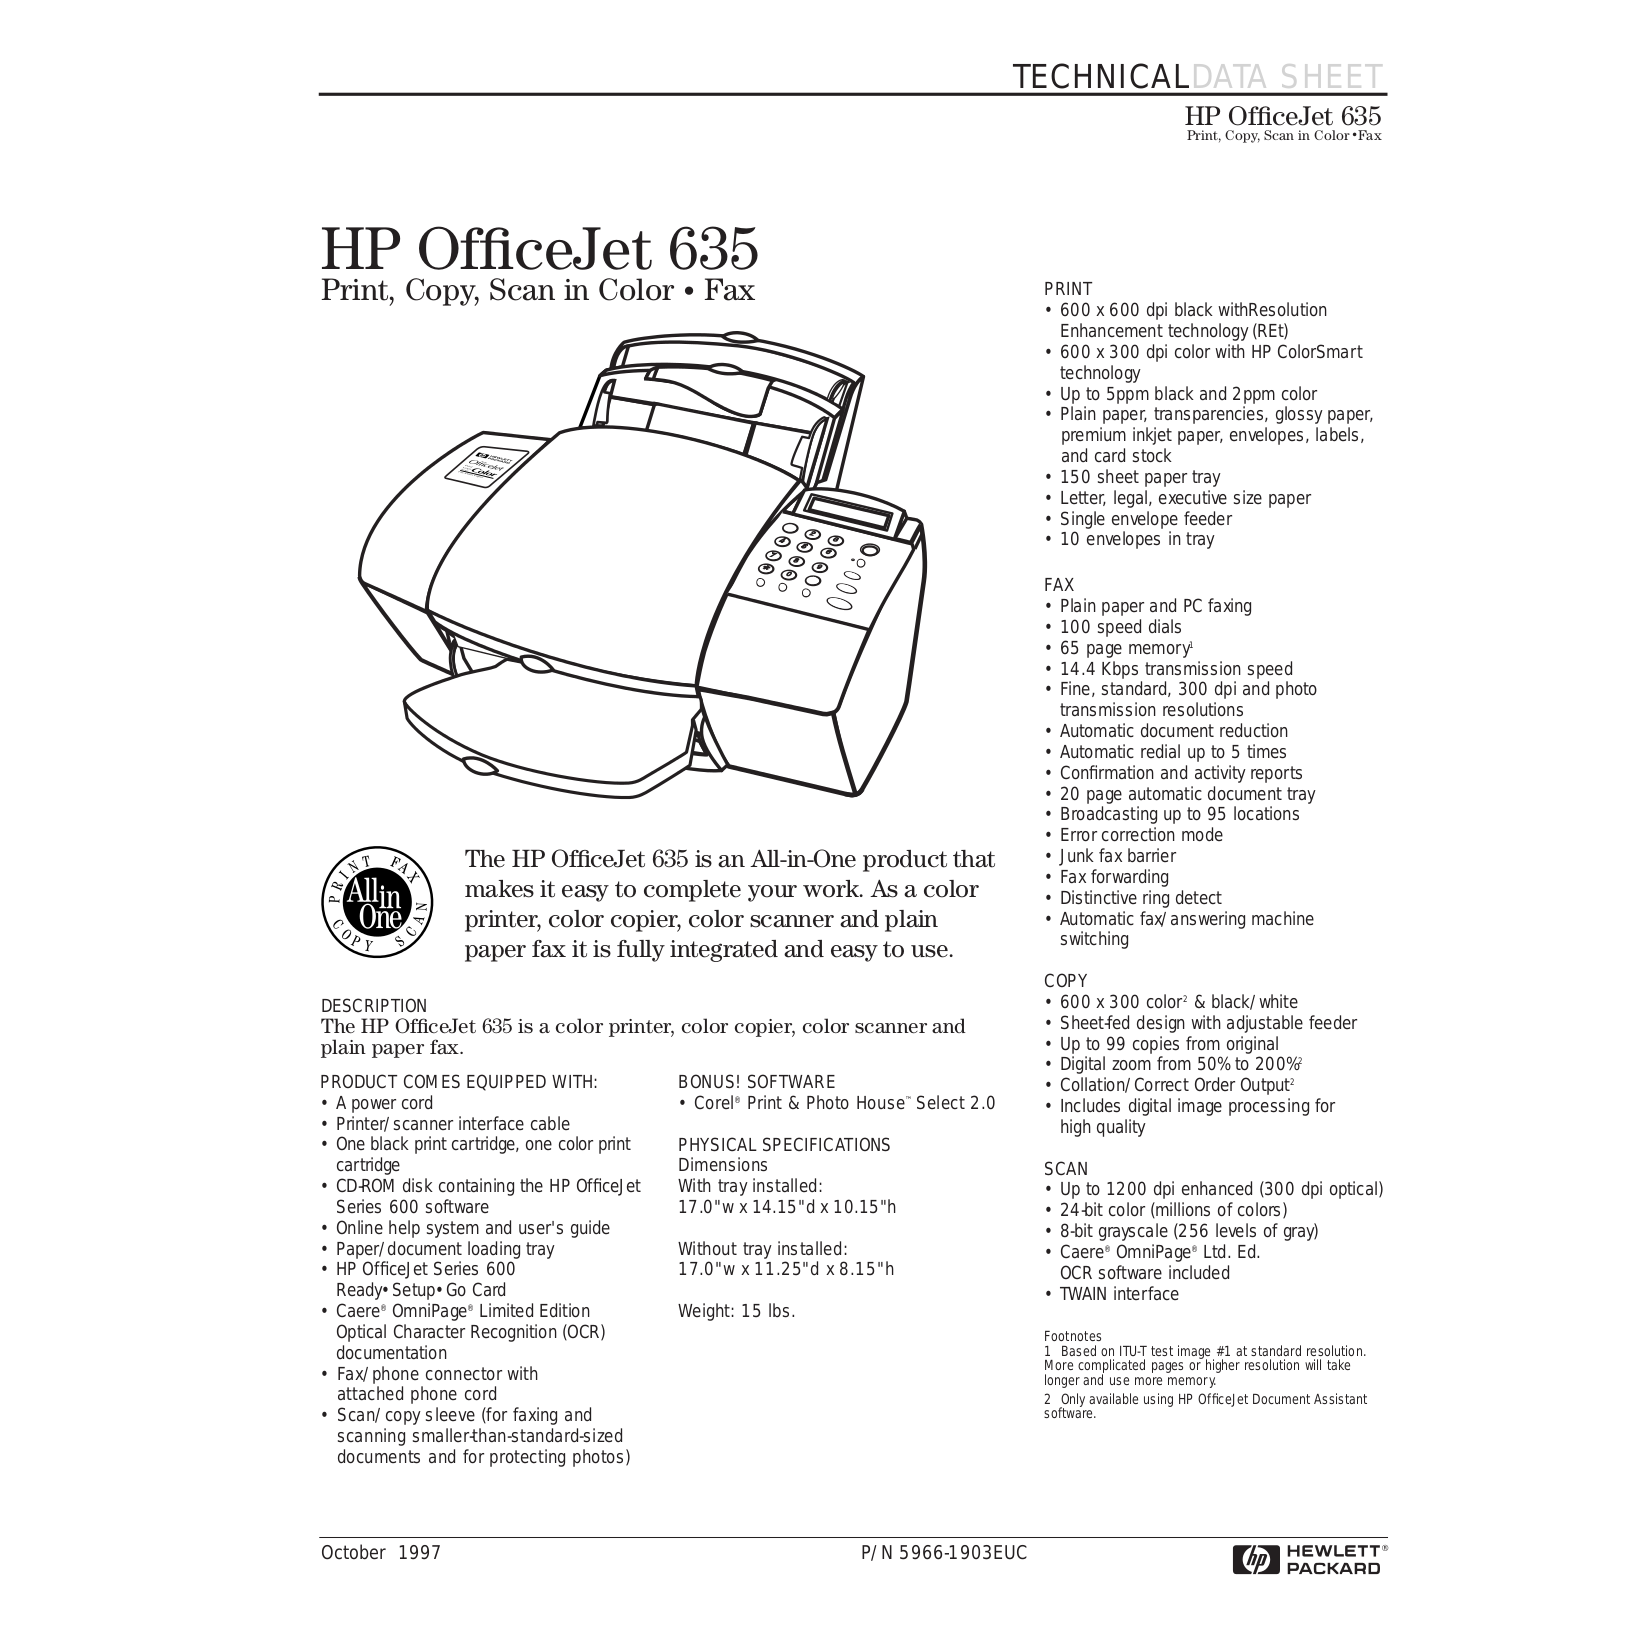 pdf for hp officejet multifunction printer manual pdf for hp multifunction printer officejet 635 manual